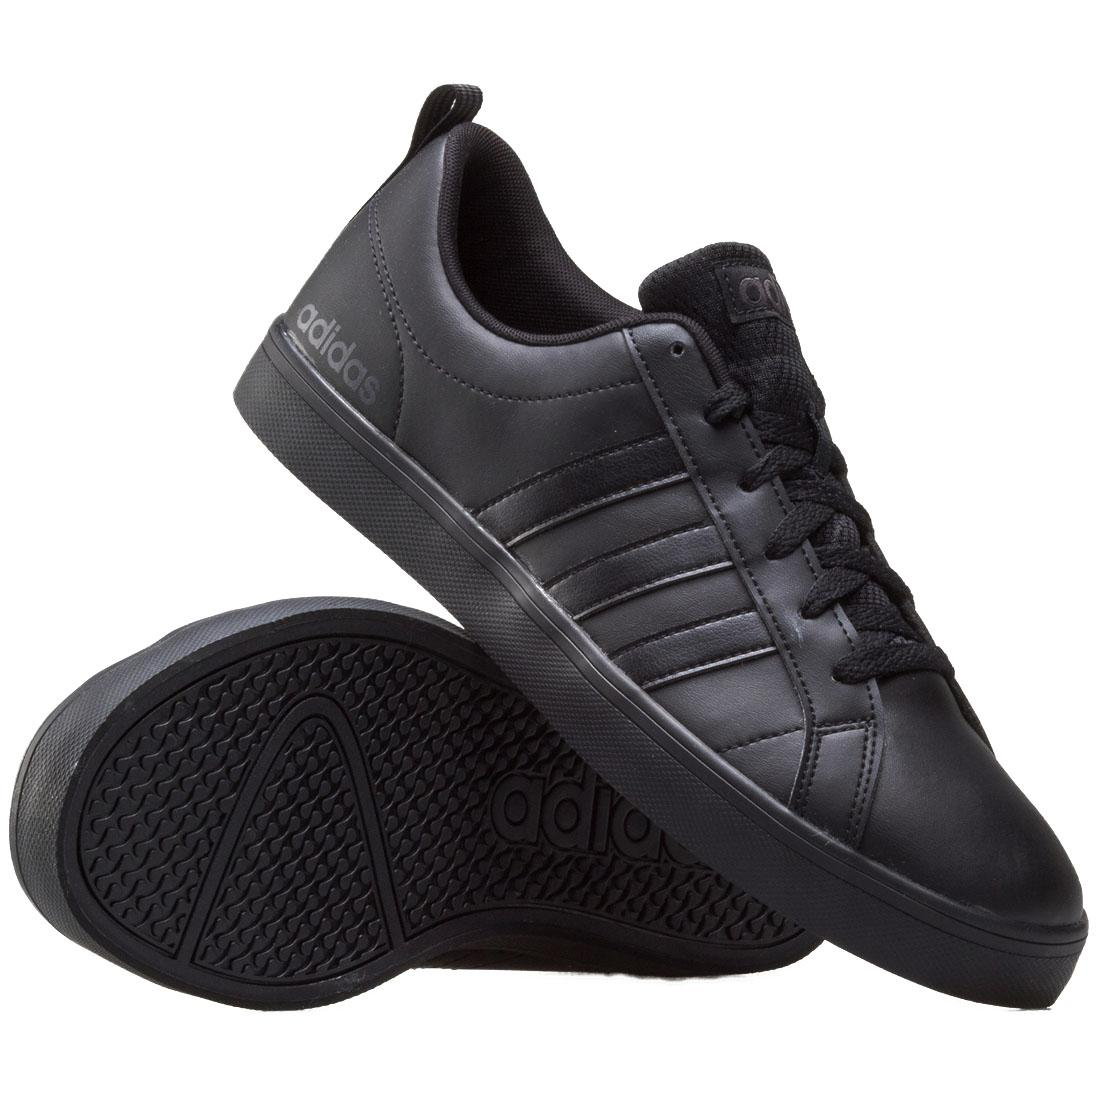 new product 29d7b 9cc18 adidas NEO Pace VS Mens Black Trainers Lace Up Athletic Sports Shoes B44869